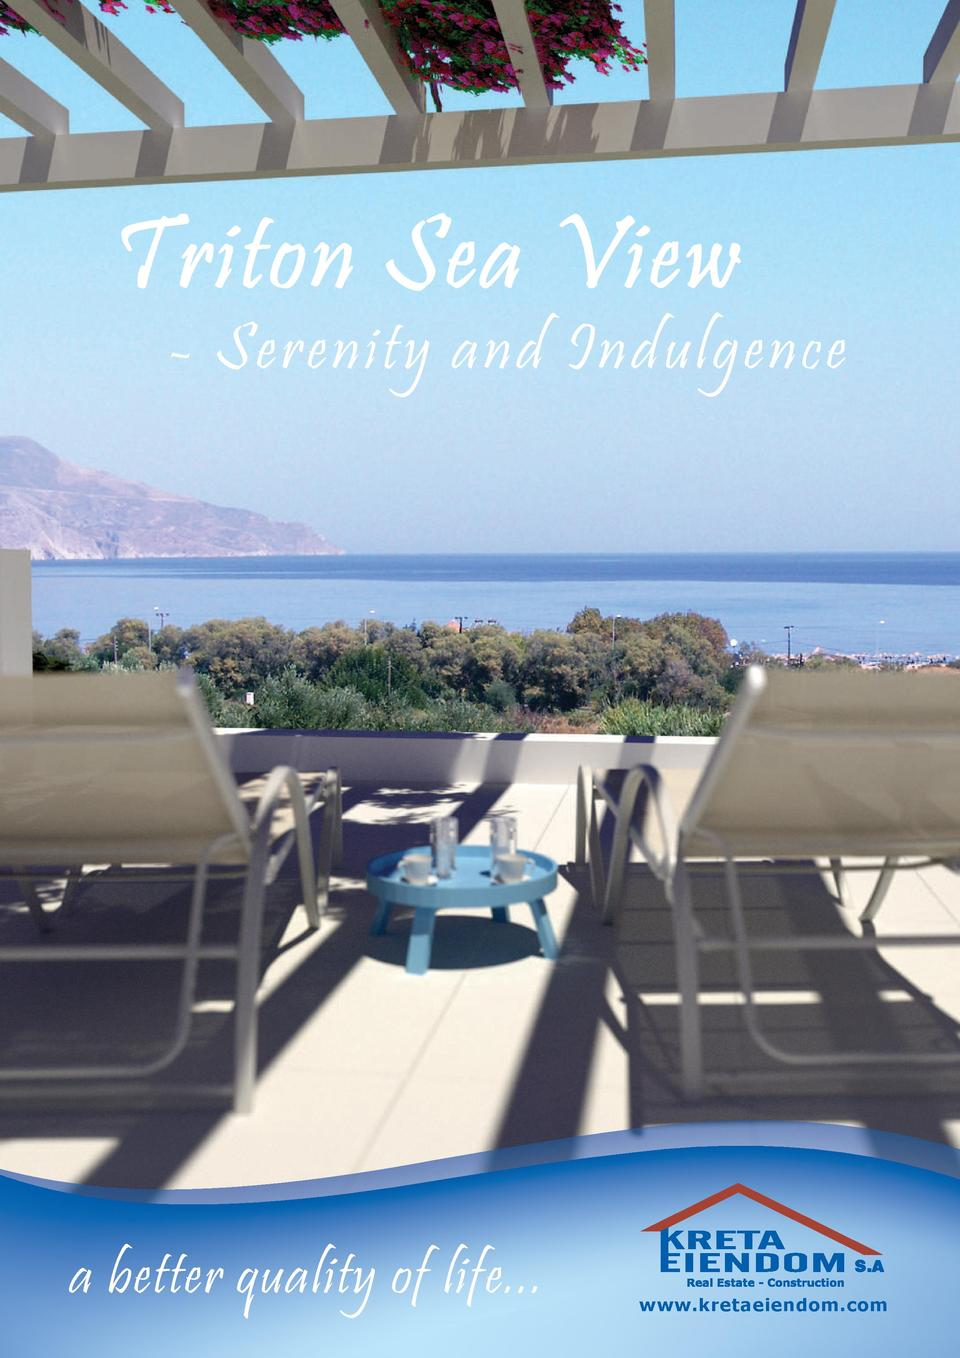 Triton Sea View  - Serenity and Indulgence  a better quality of life...  www.kretaeiendom.com